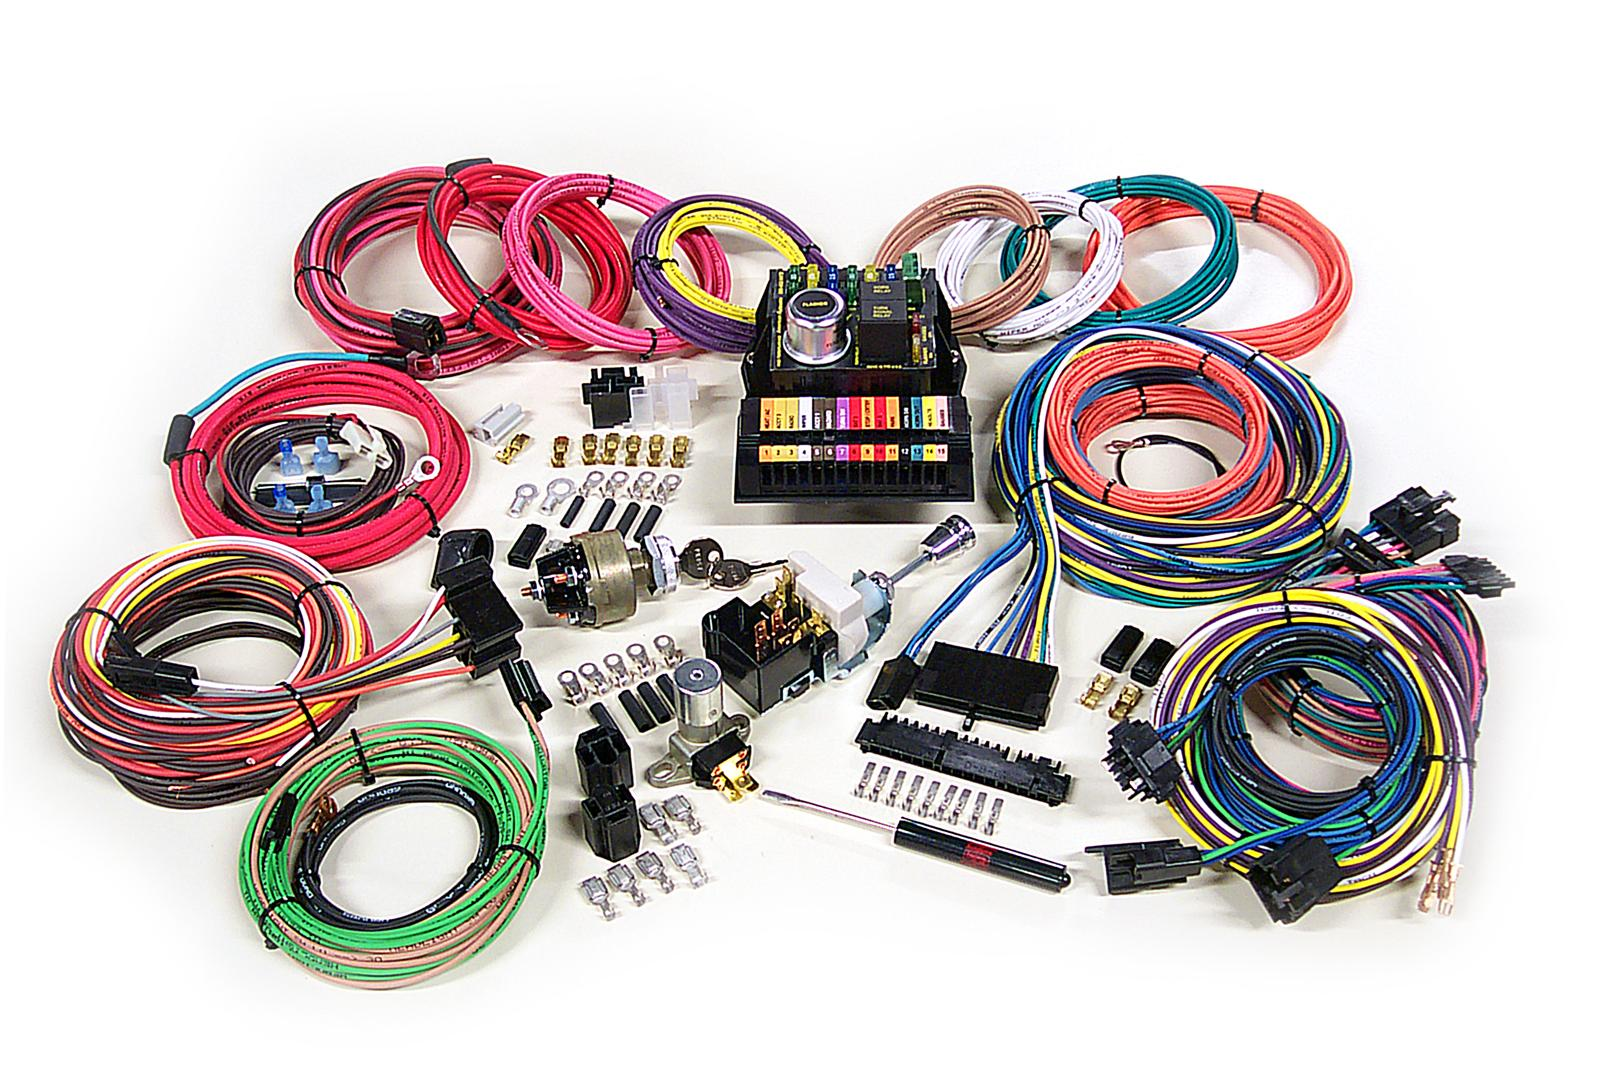 hight resolution of easy wiring harness kit car wiring diagram img painless race car wiring harness kit easy wiring